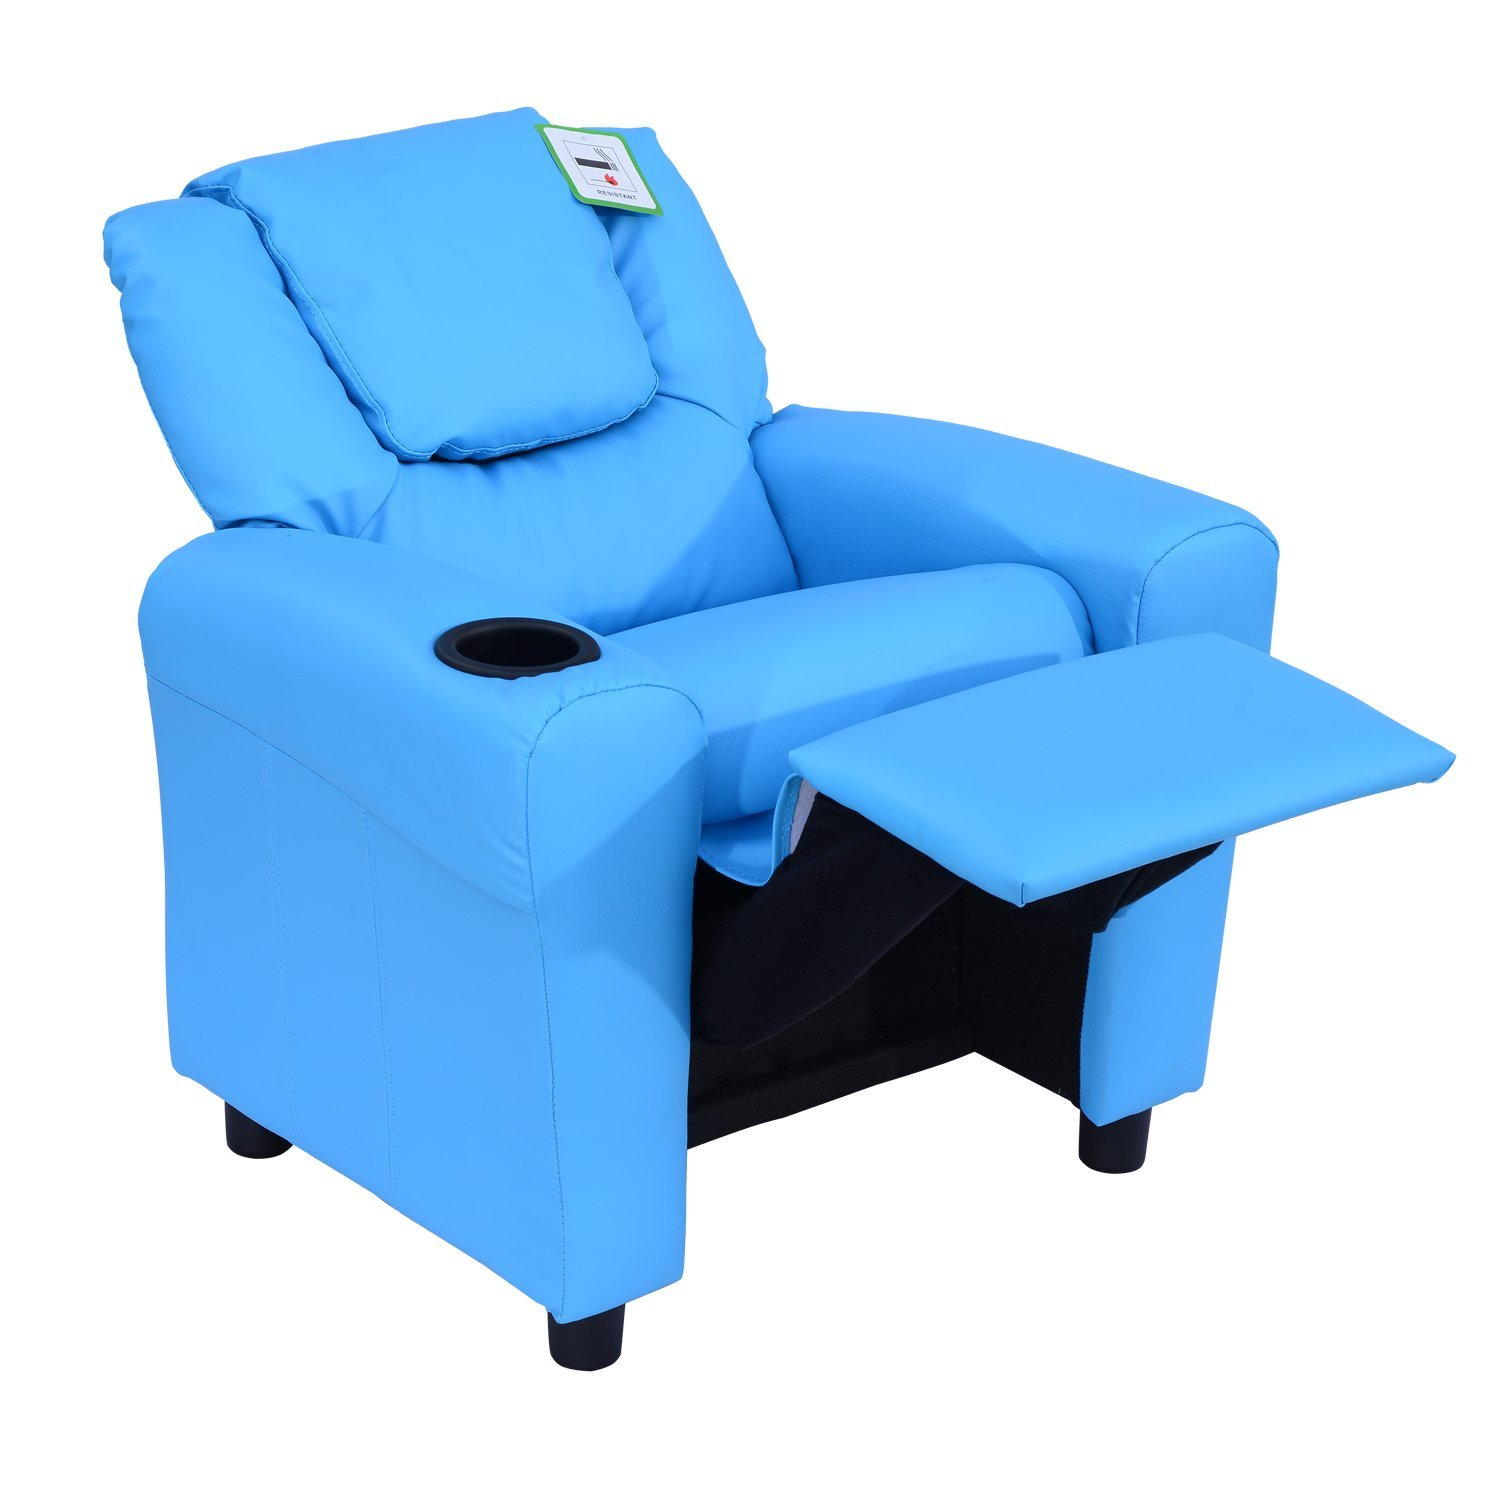 Kids Leather Armchair Home Safe Best For Children With Hom Sofa Lying  Recliner Reclining Toddler And Footstool Blue Chair Design Company Without  Arms